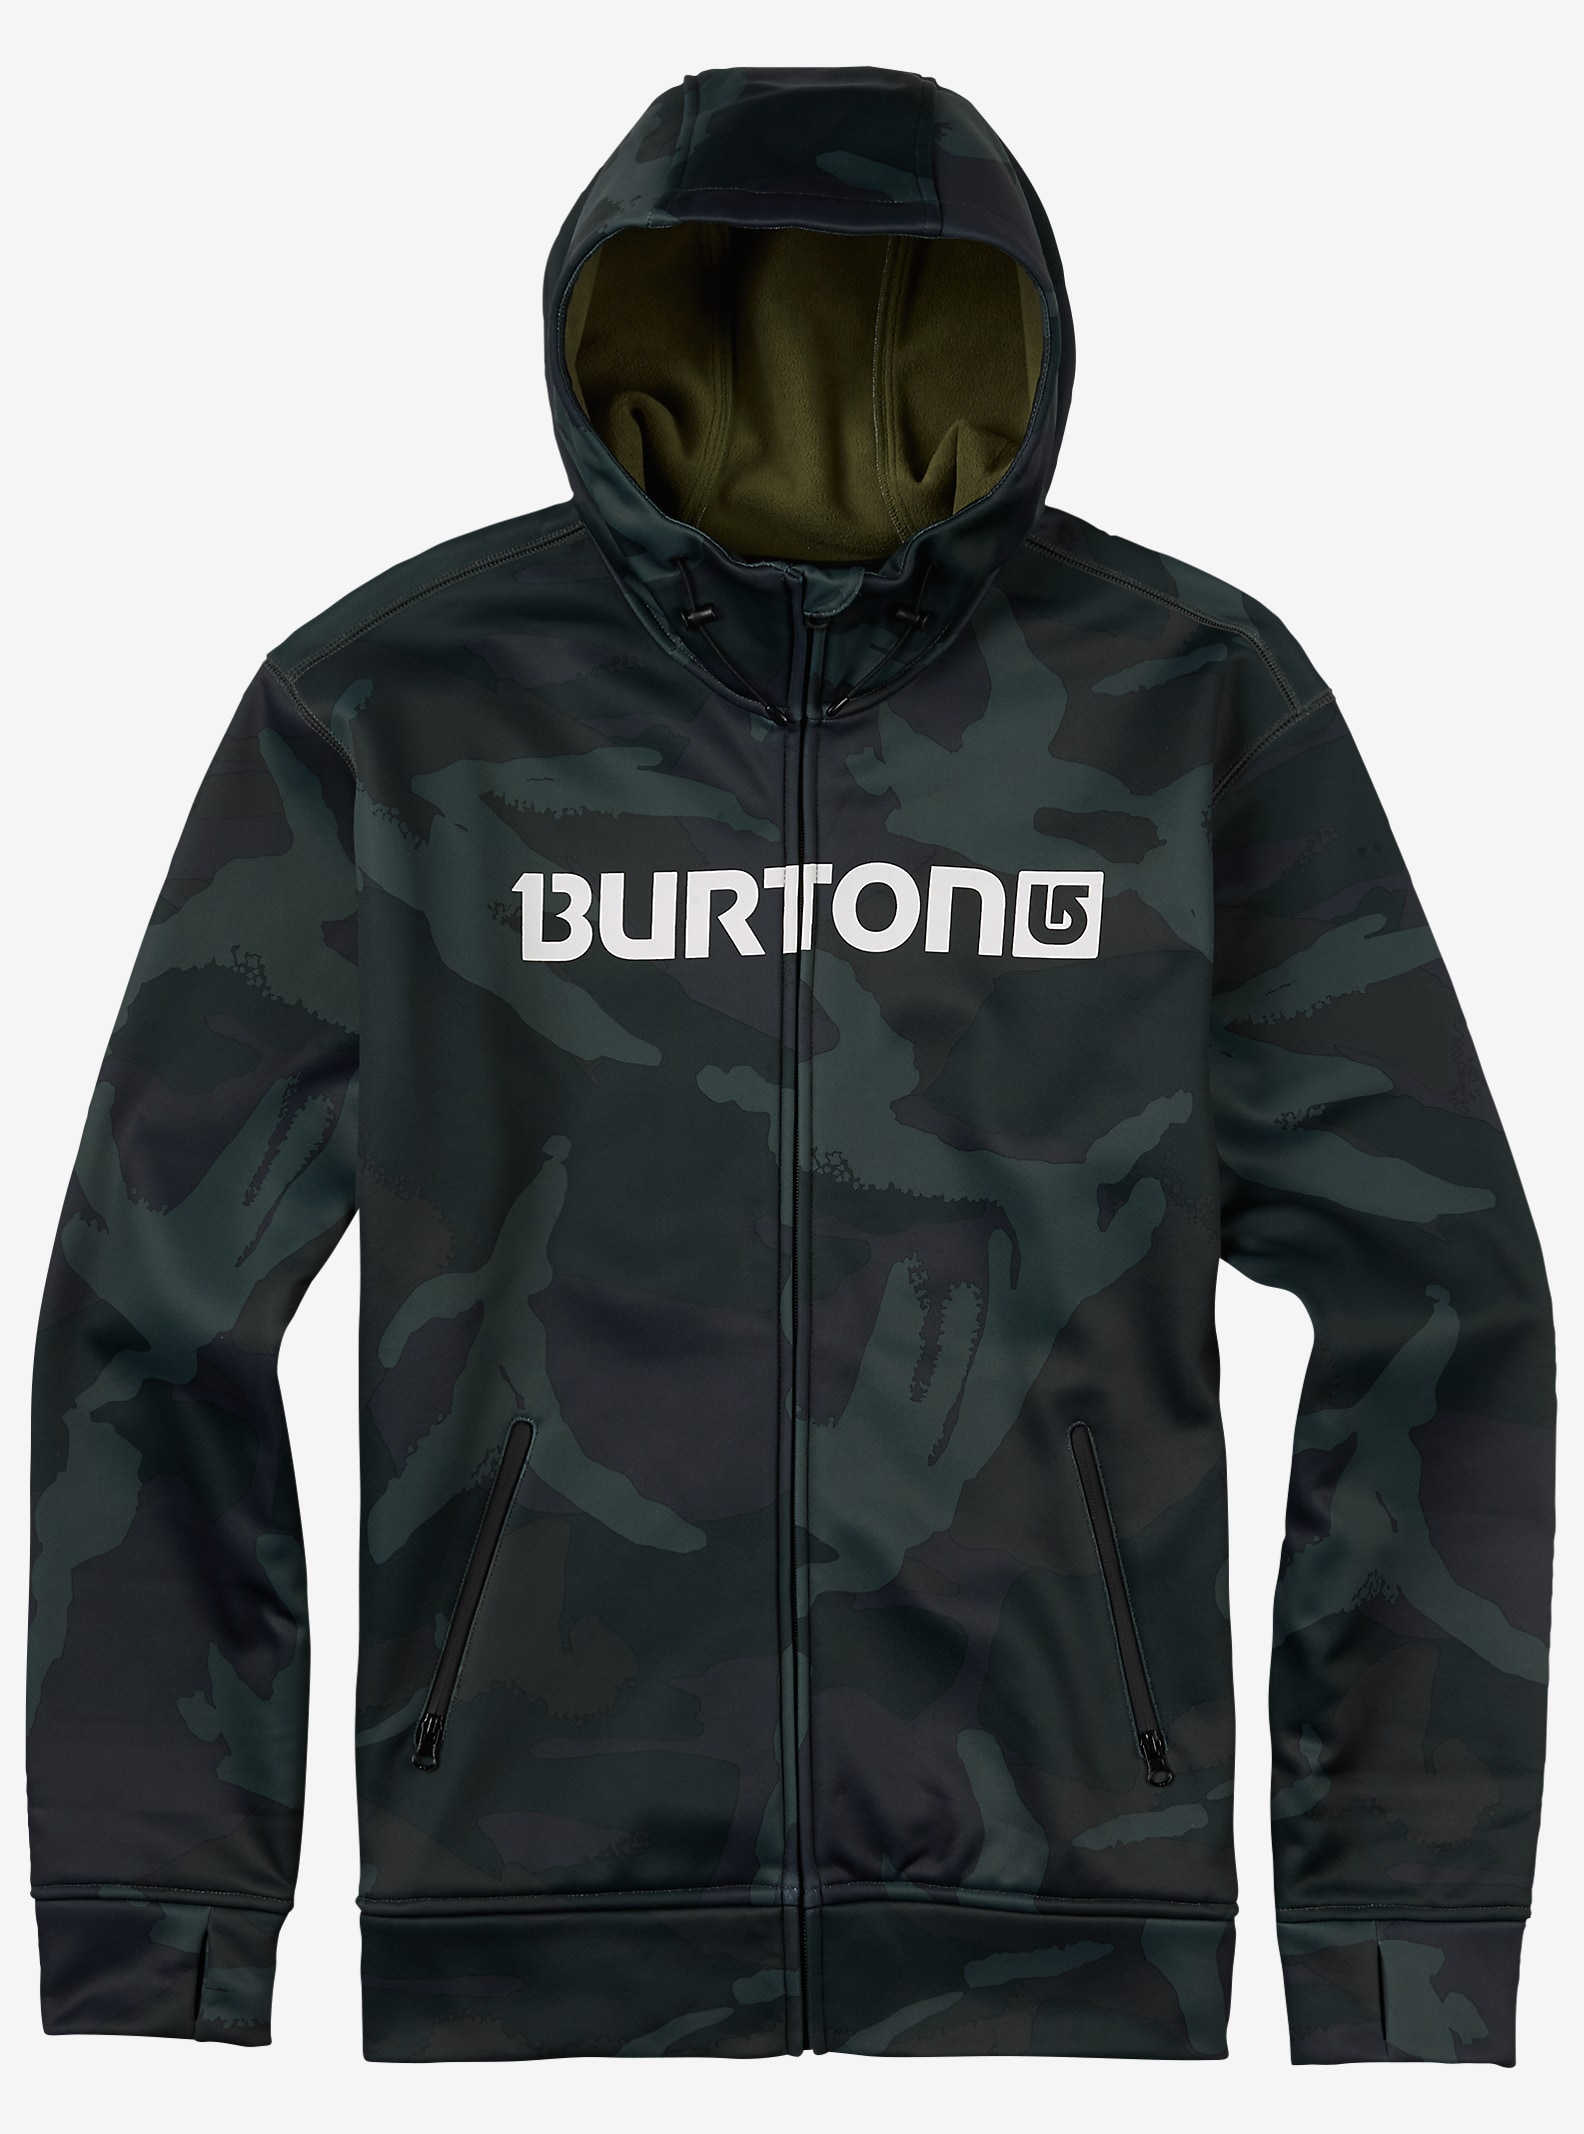 Burton Bonded Full-Zip Hoodie shown in Beetle Derby Camo